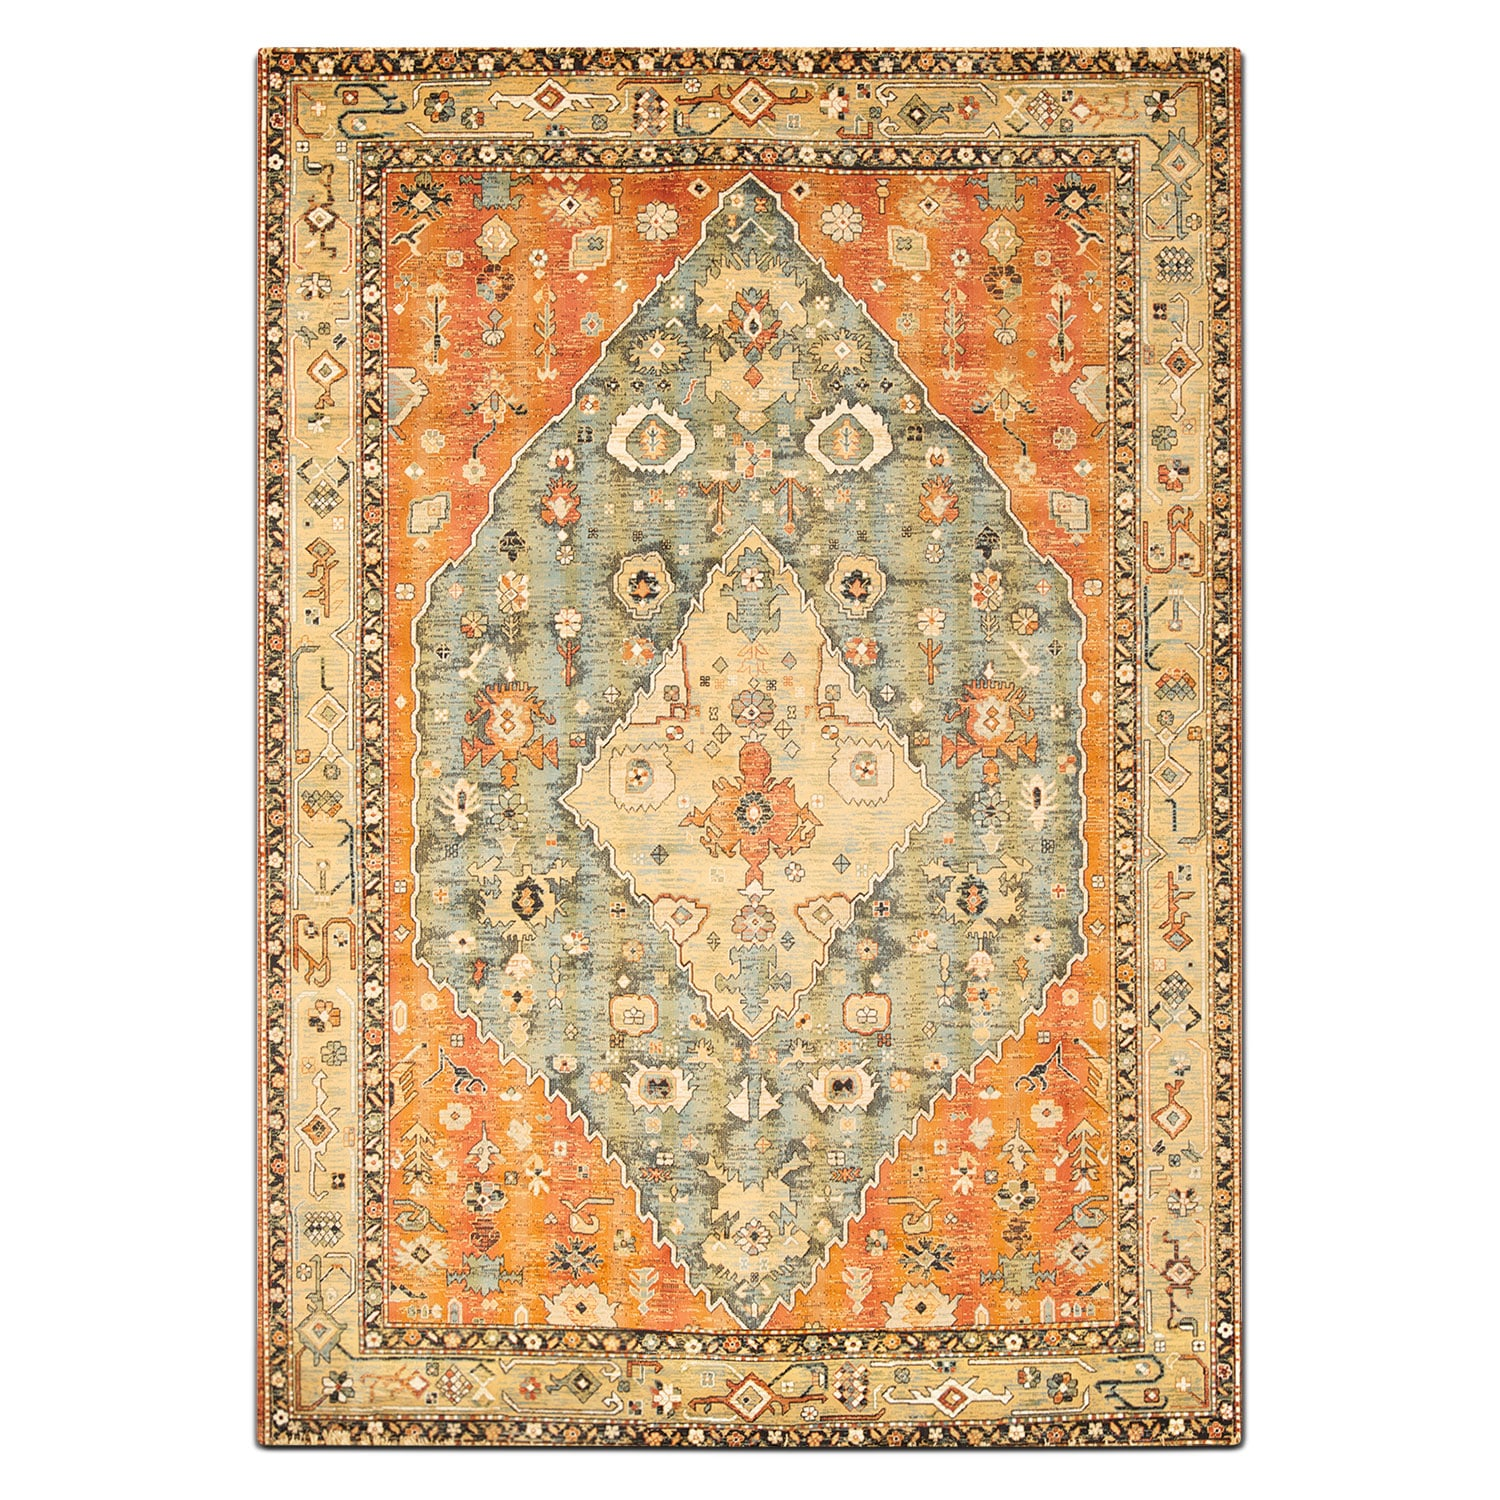 Sonoma 8' x 10' Area Rug - Aqua and Celadon